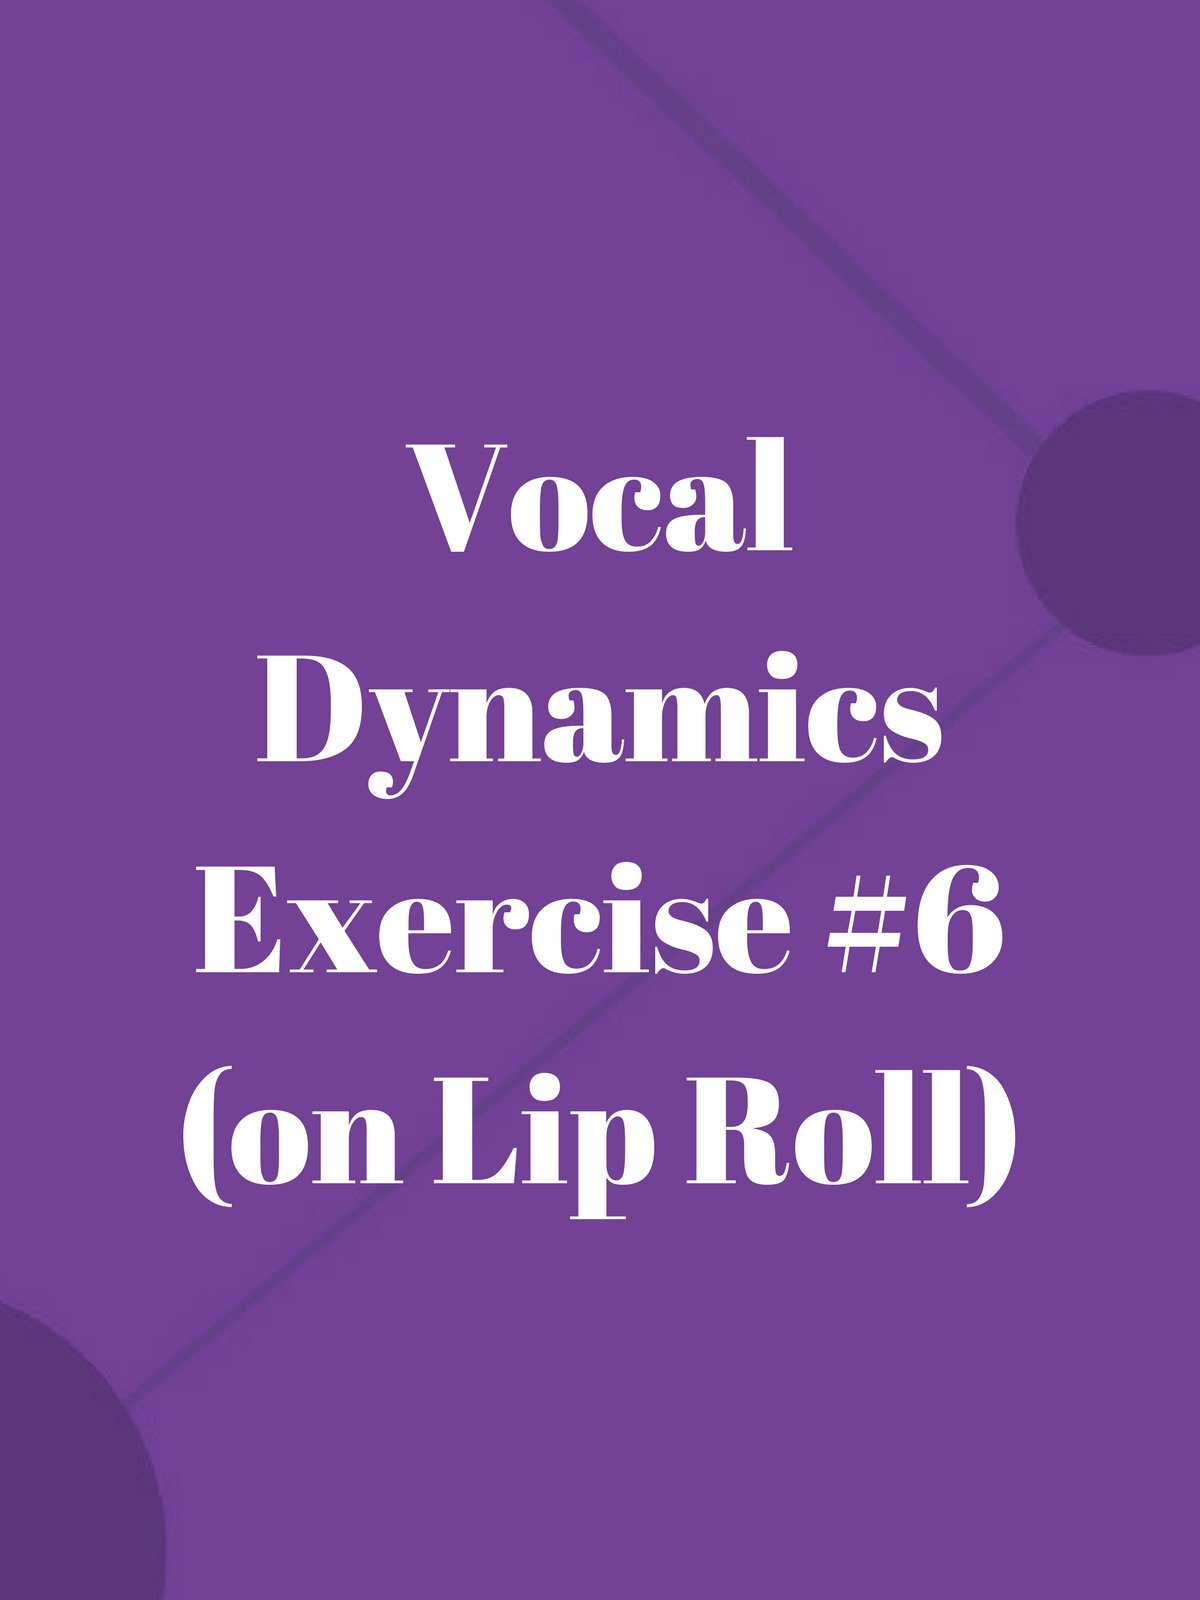 Vocal Dynamics Exercise #6 (on Lip Roll)